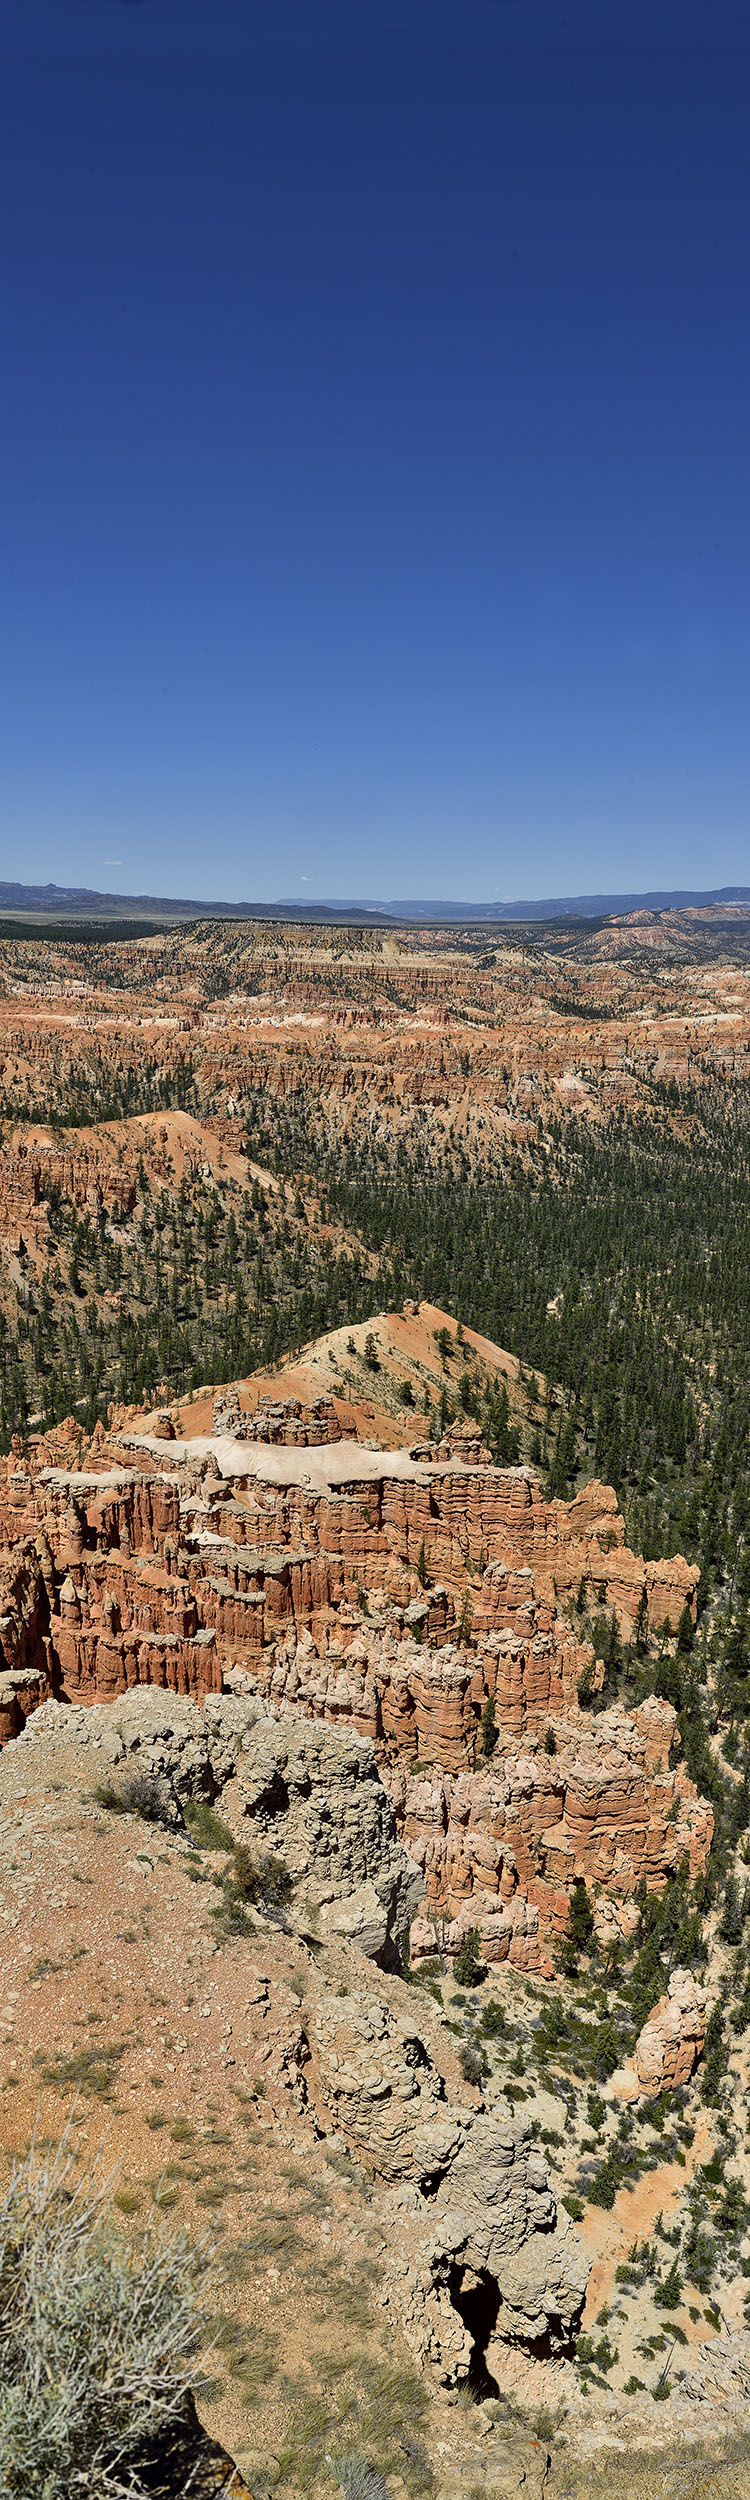 View from Bryce Canyon Rim,